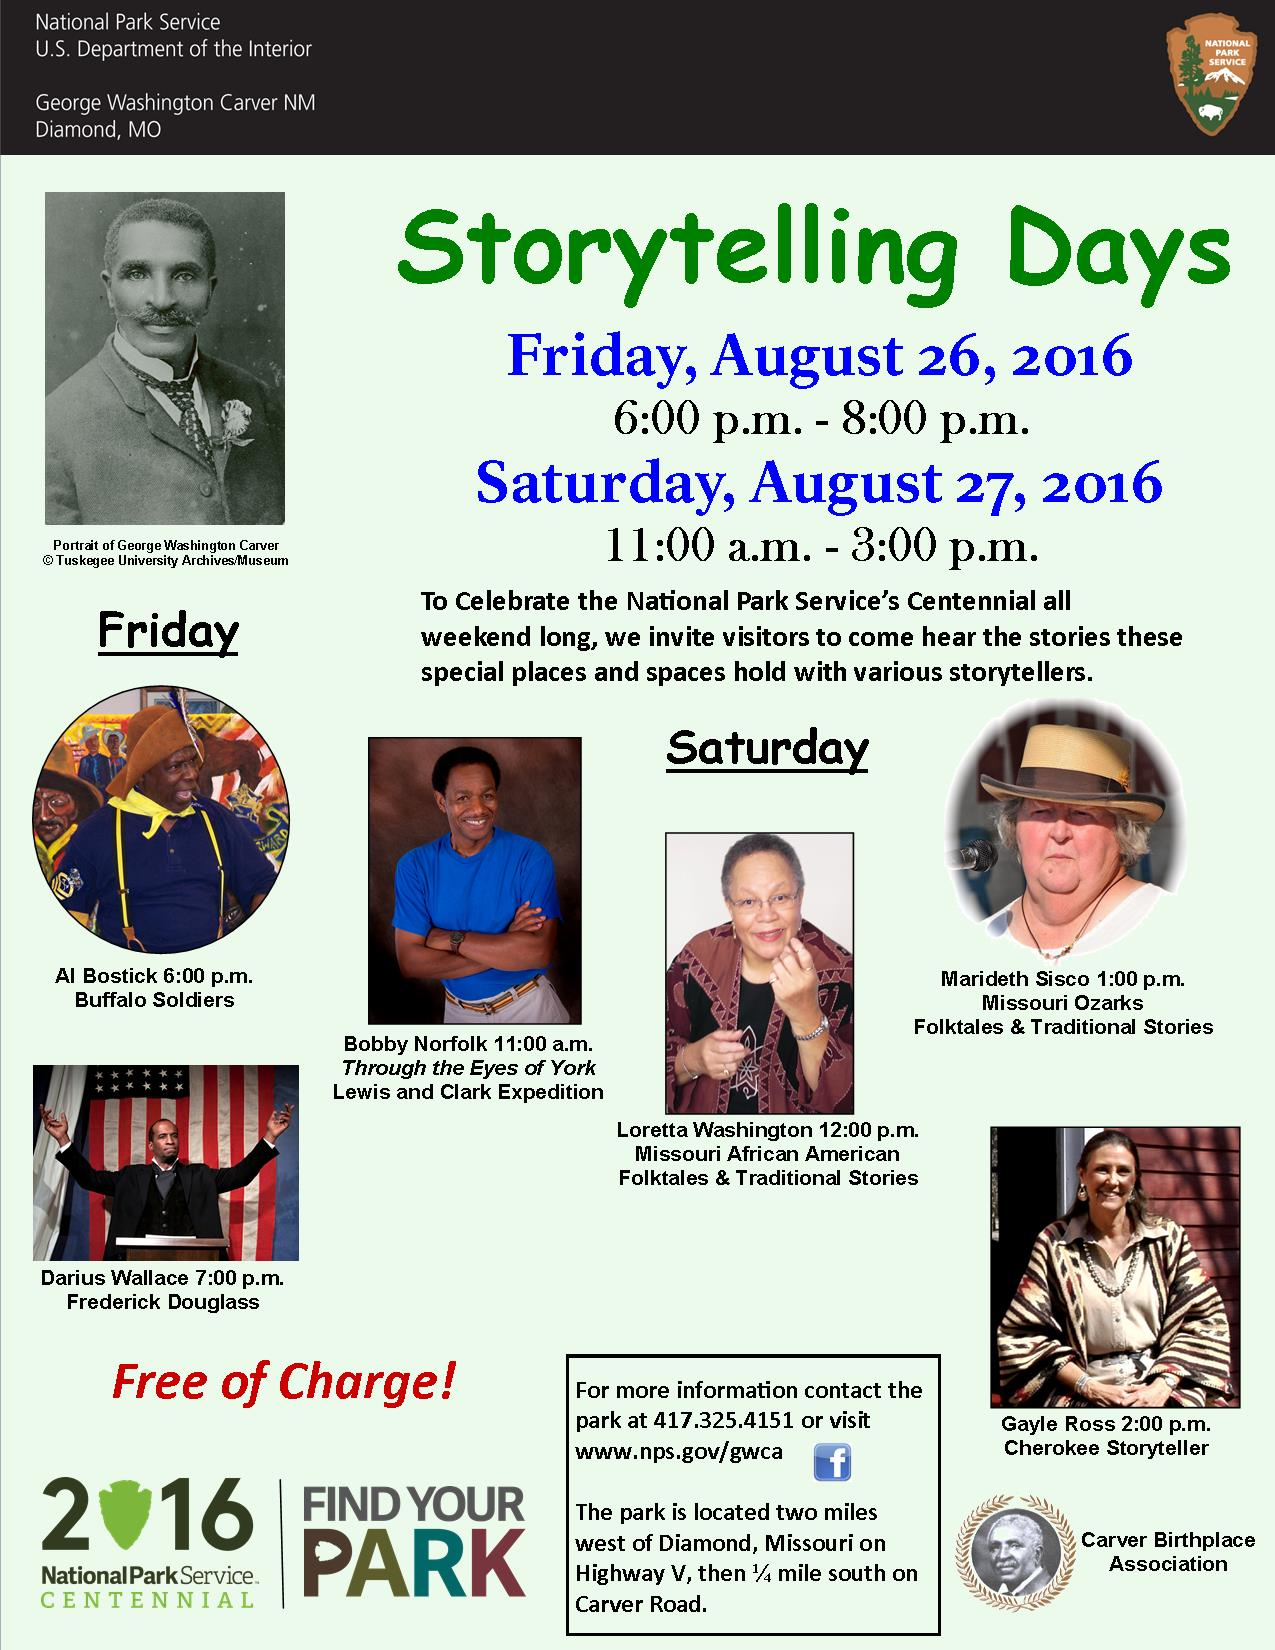 storytelling festival 2016 george washington carver national poster for the storytelling days at the park